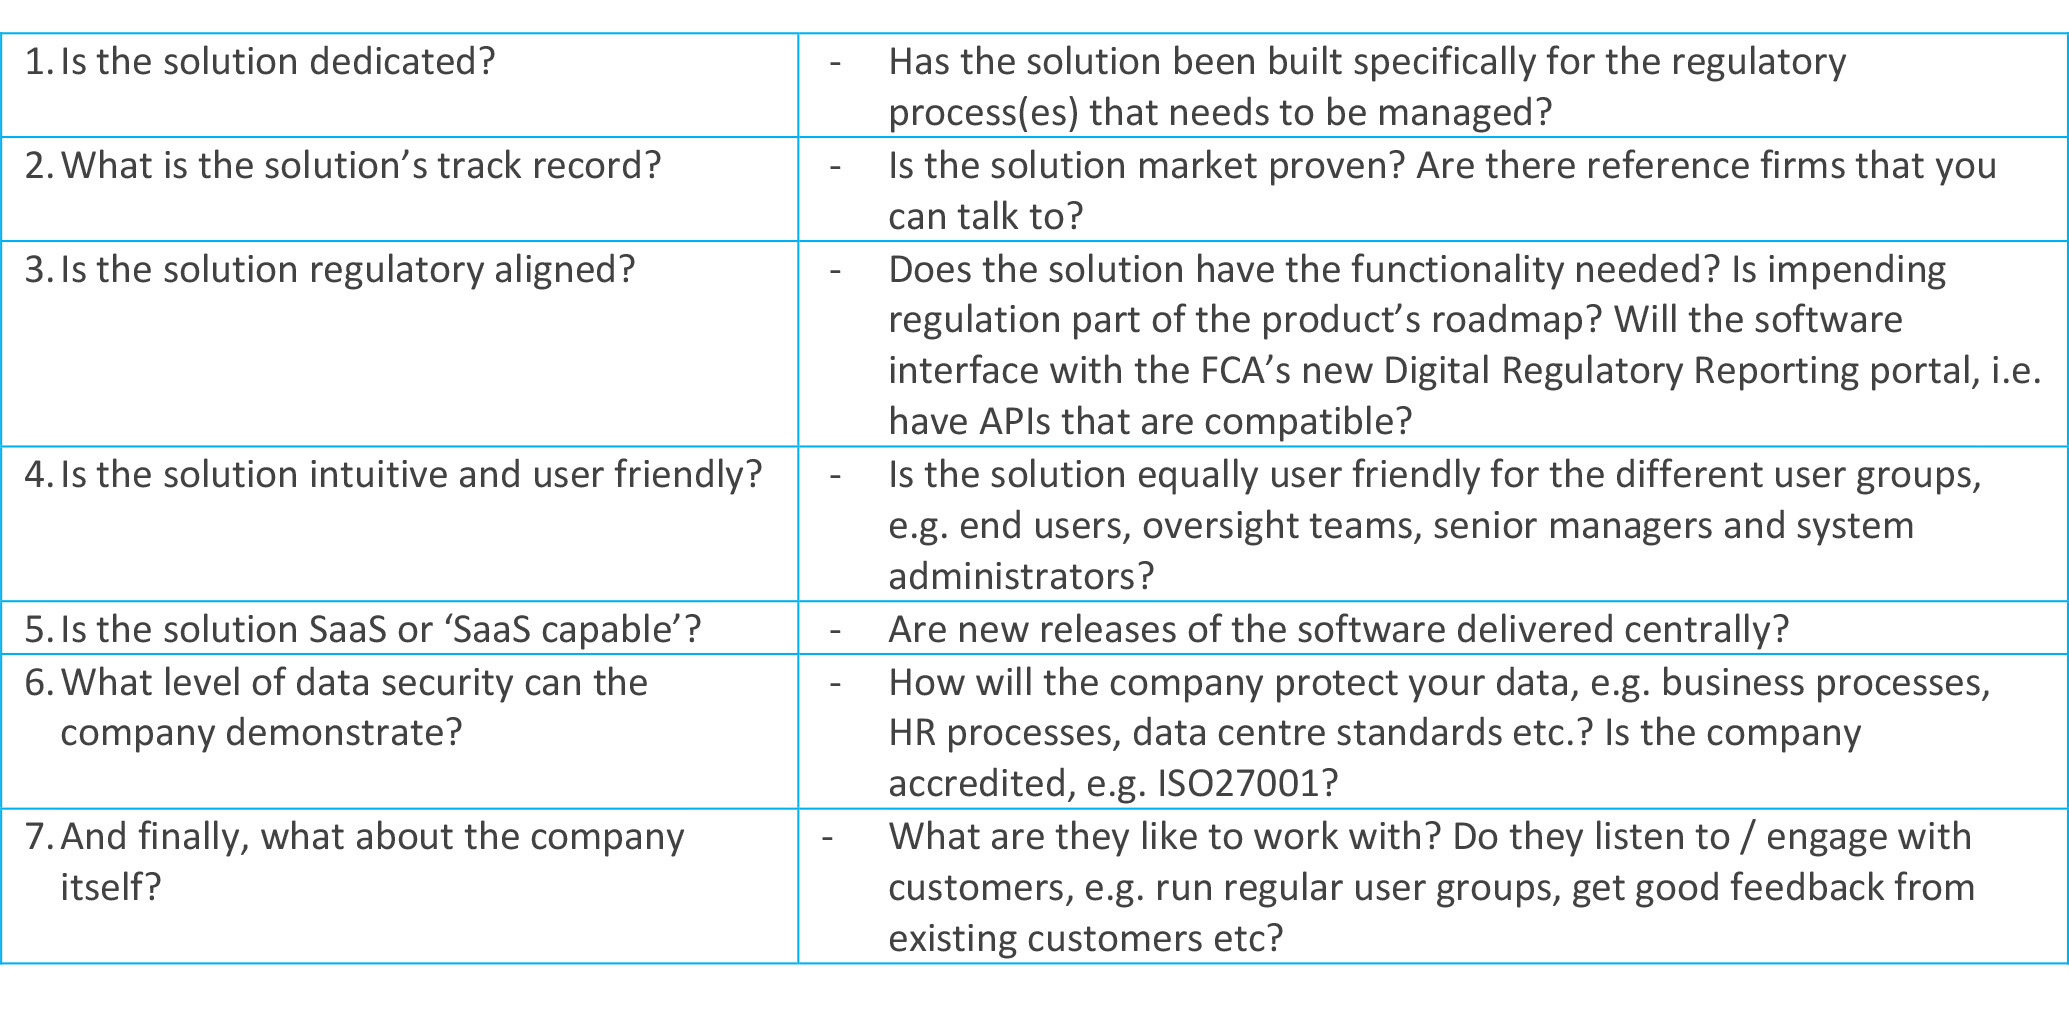 Key points when searching our RegTech